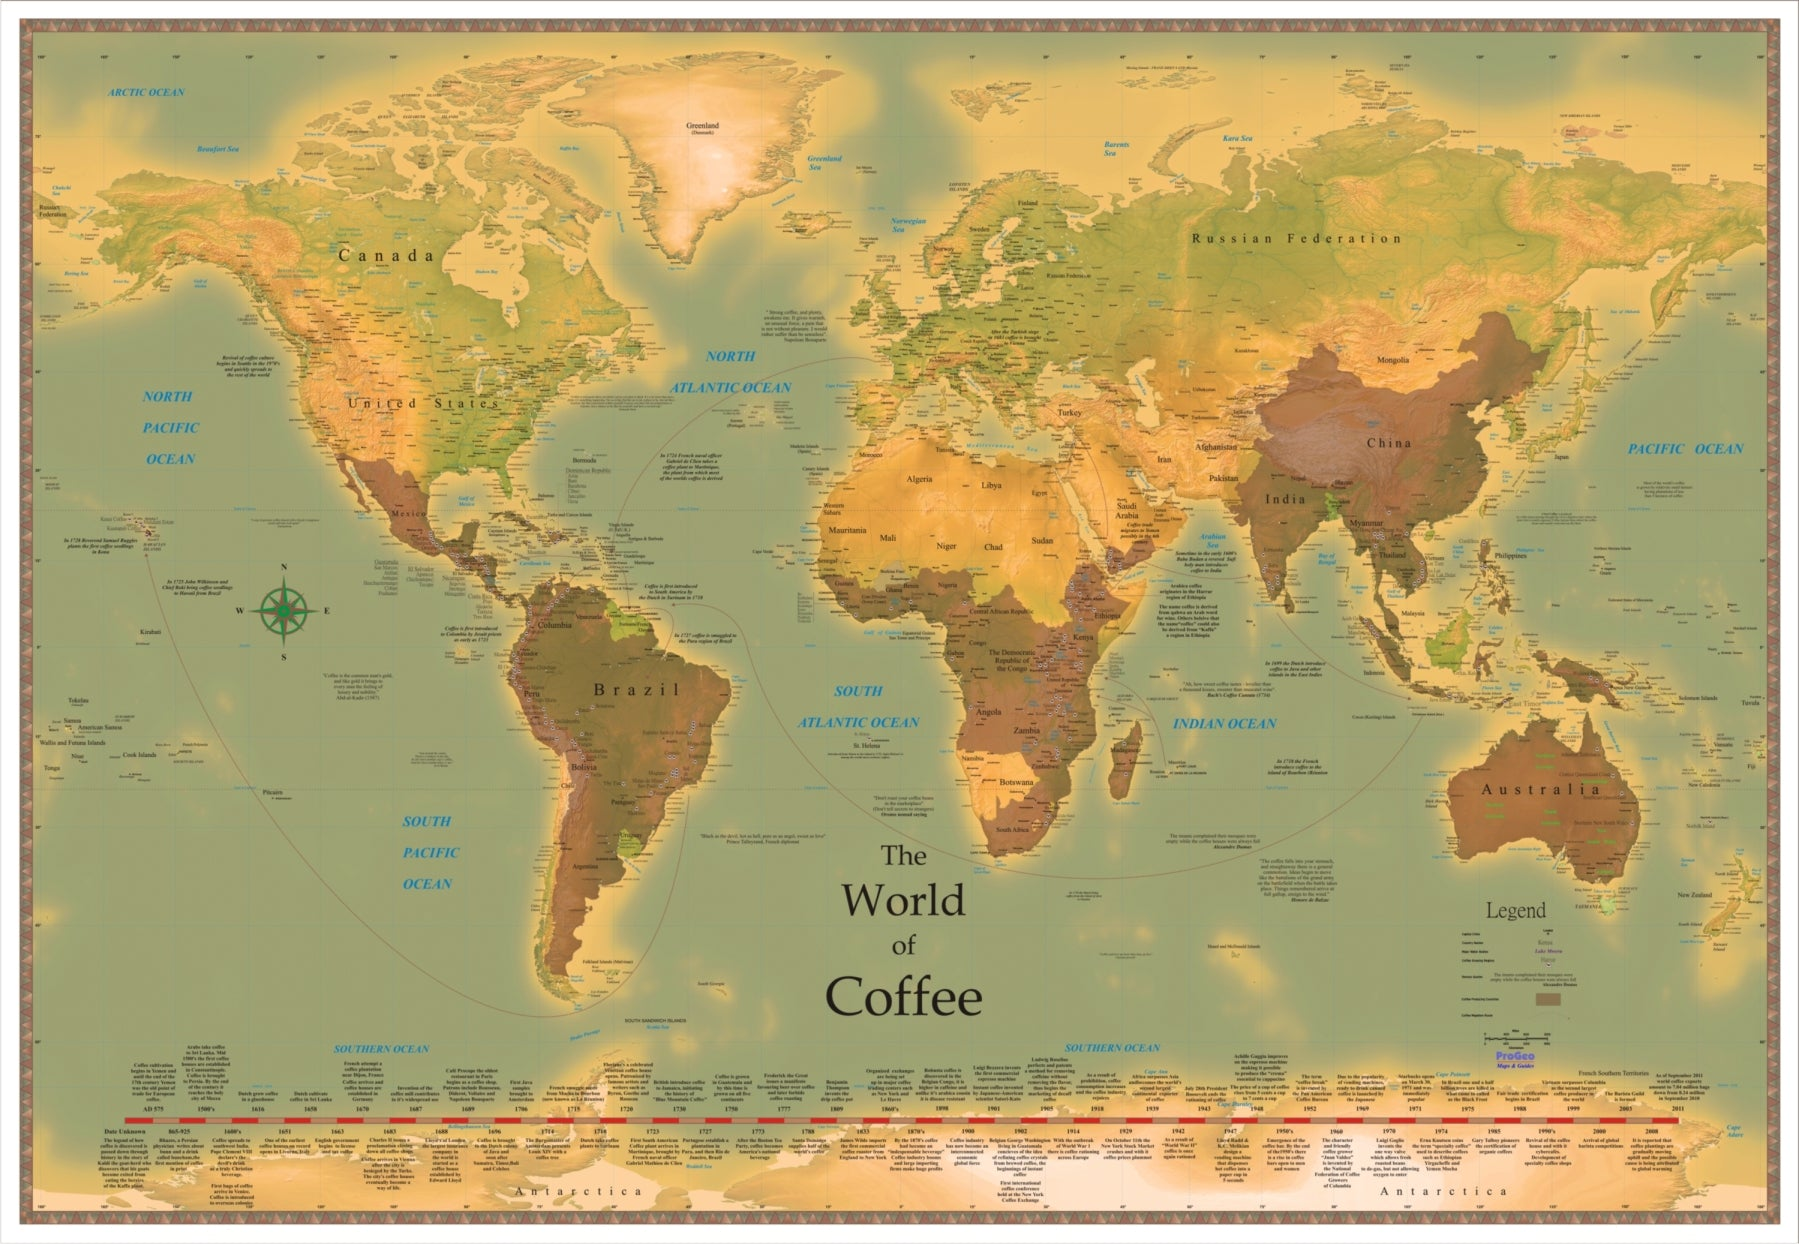 World coffee map 2018 edition exquisitely detailed large 48 x 72 world coffee map 2018 edition exquisitely detailed large 48 x 72 laminated gumiabroncs Image collections